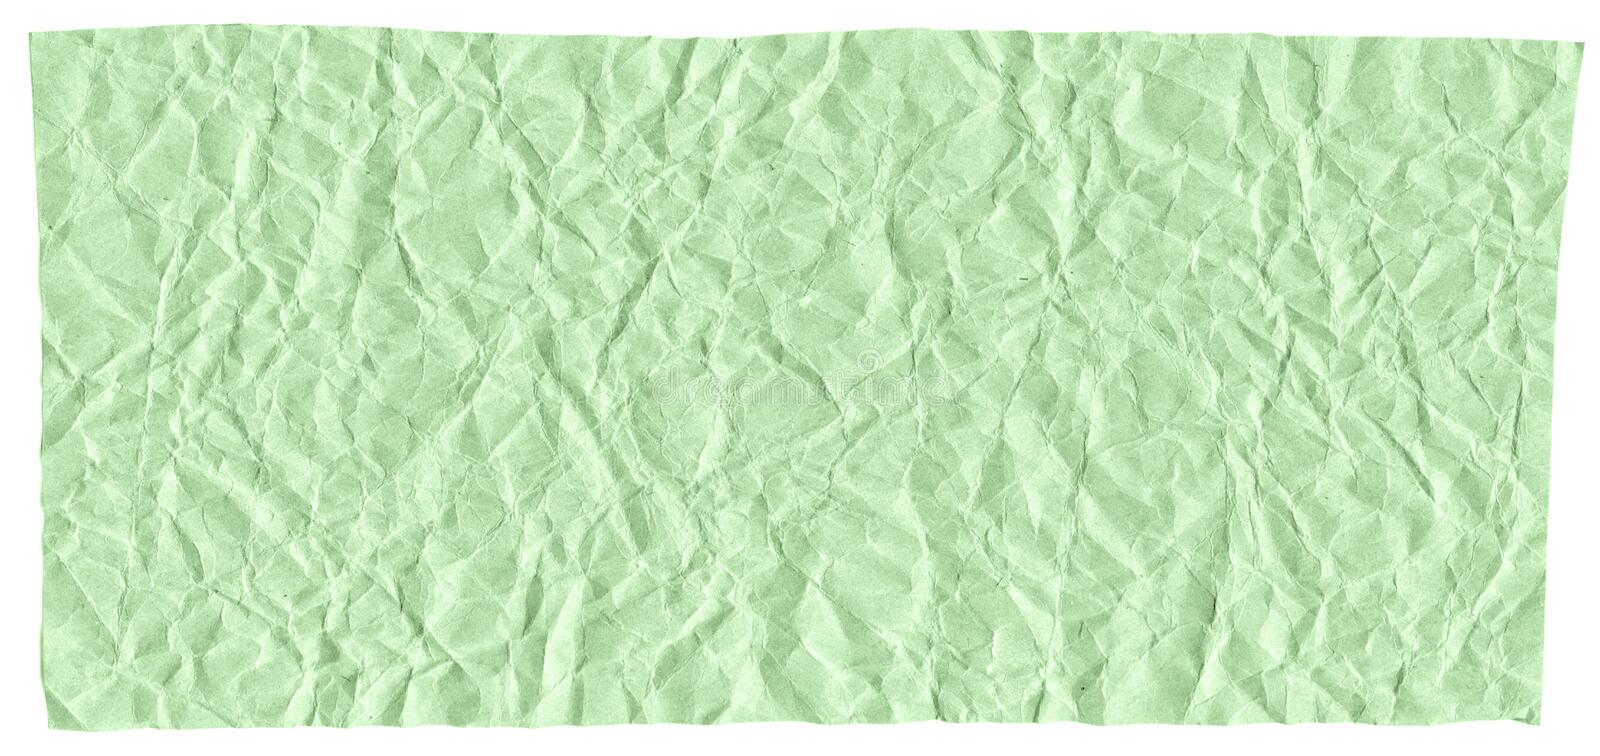 Ready frame for design, texture of crumpled craft paper, light green abstract background. Macro stock photography